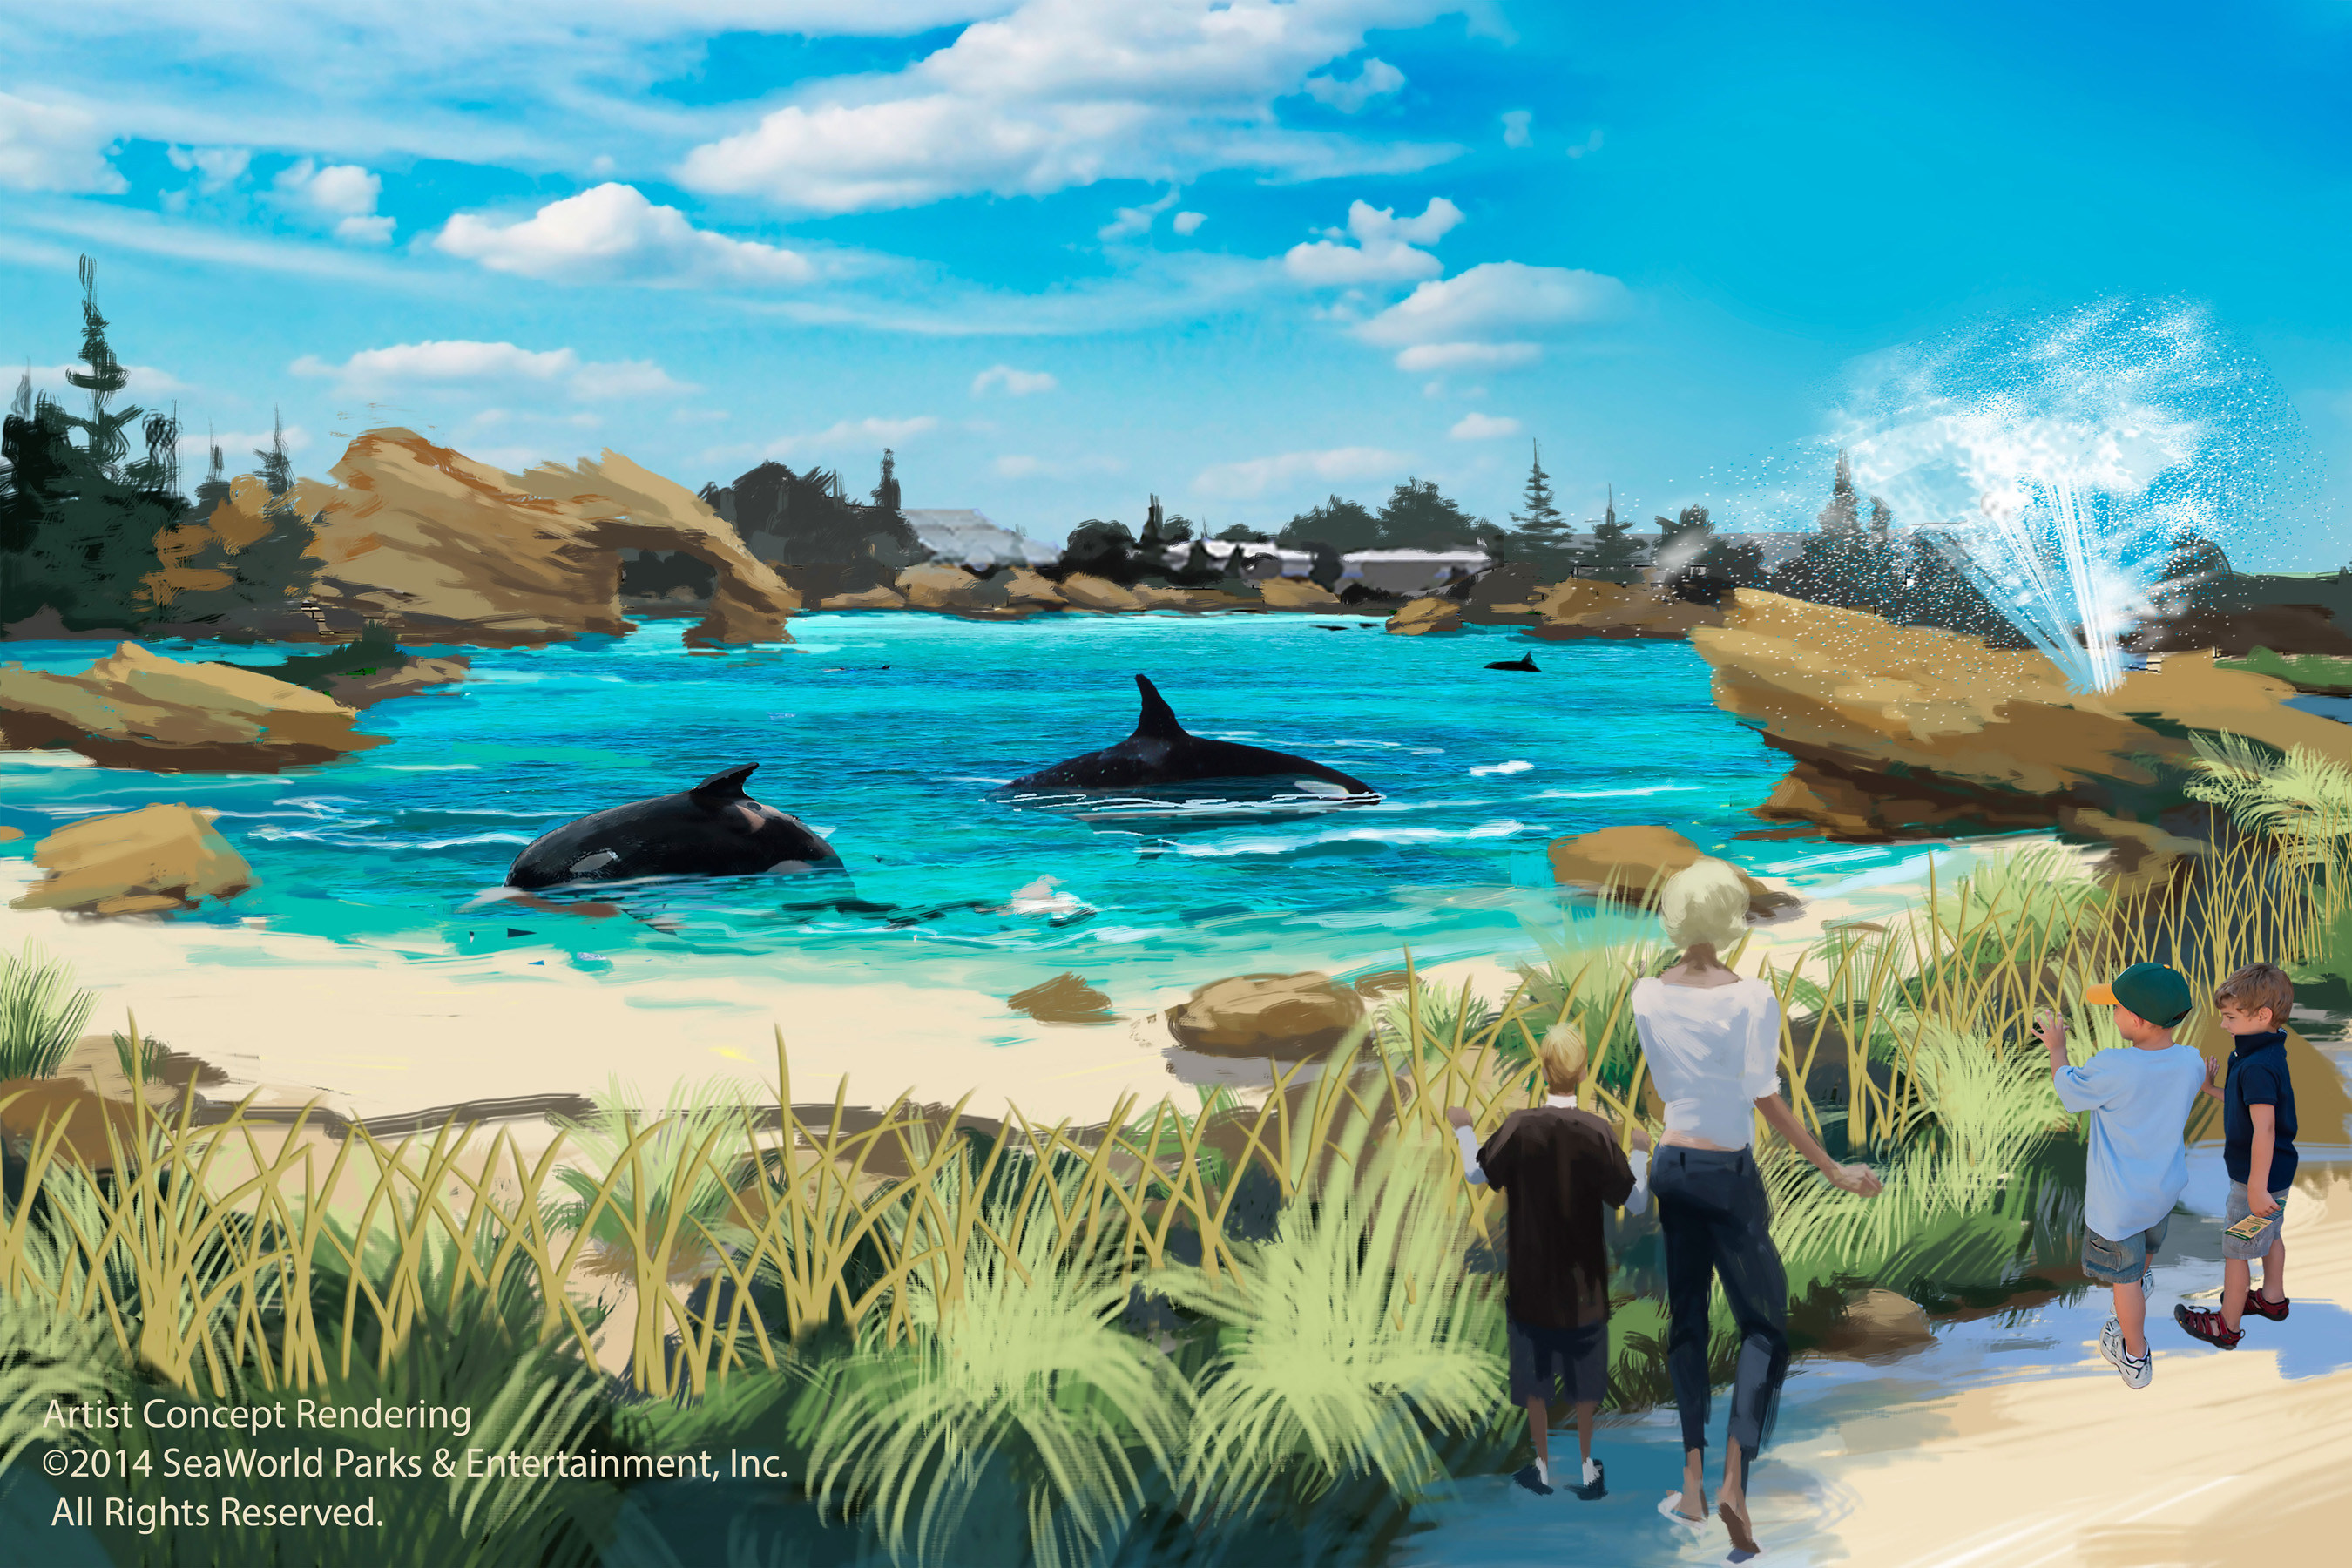 SeaWorld today announced Blue World Project, a massive expansion of the parks' killer whale environments. The first, at SeaWorld San Diego, will nearly double the size of the existing habitat, with a volume of 10 million gallons of chilled seawater. (PRNewsFoto/SeaWorld Entertainment, Inc.)